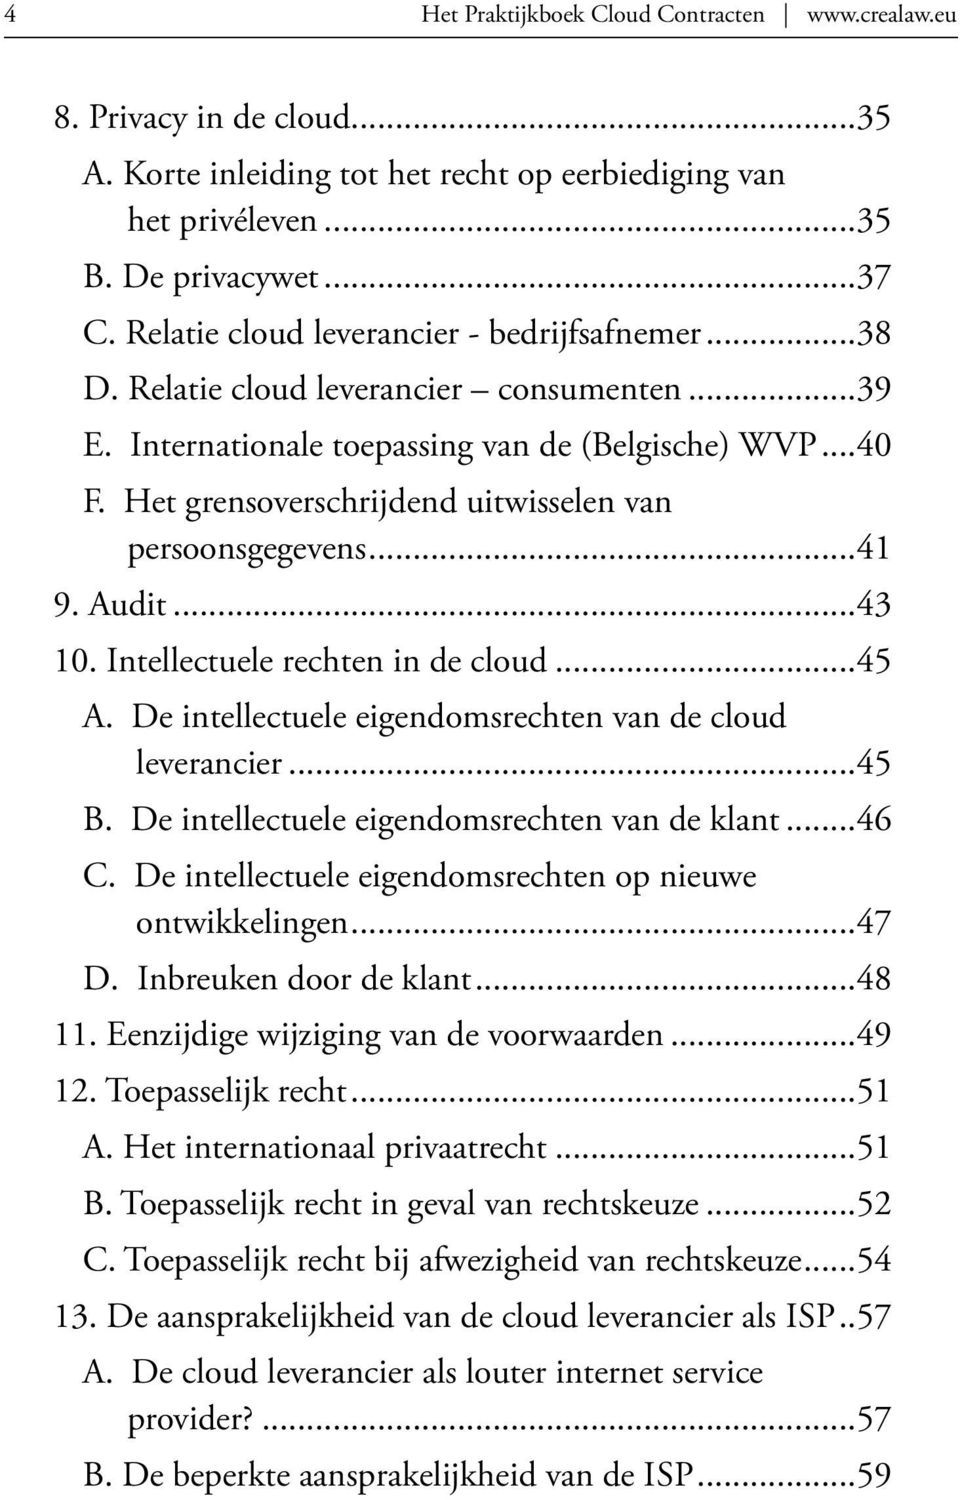 Het grensoverschrijdend uitwisselen van persoonsgegevens...41 9. Audit...43 10. Intellectuele rechten in de cloud...45 A. De intellectuele eigendomsrechten van de cloud leverancier...45 B.